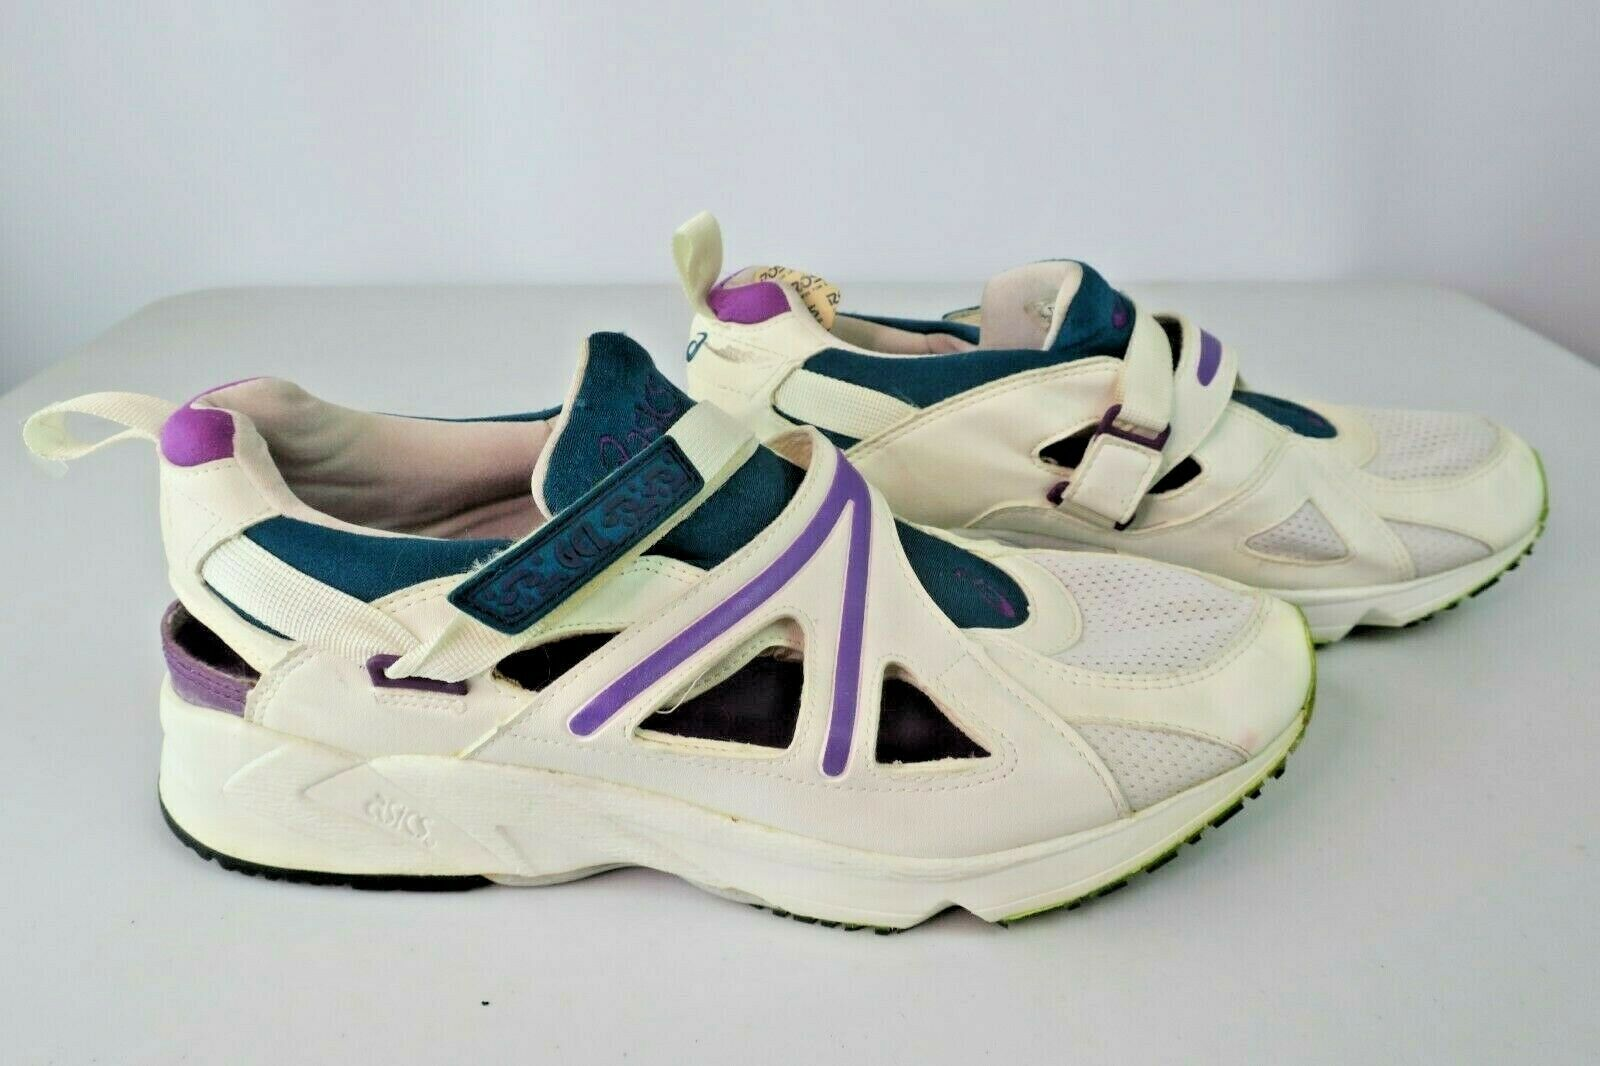 Asics VTG 80s TY-506 Cut-Out Trainers Lace-Free Fasteners Dad-scarpe NOS Grandpa